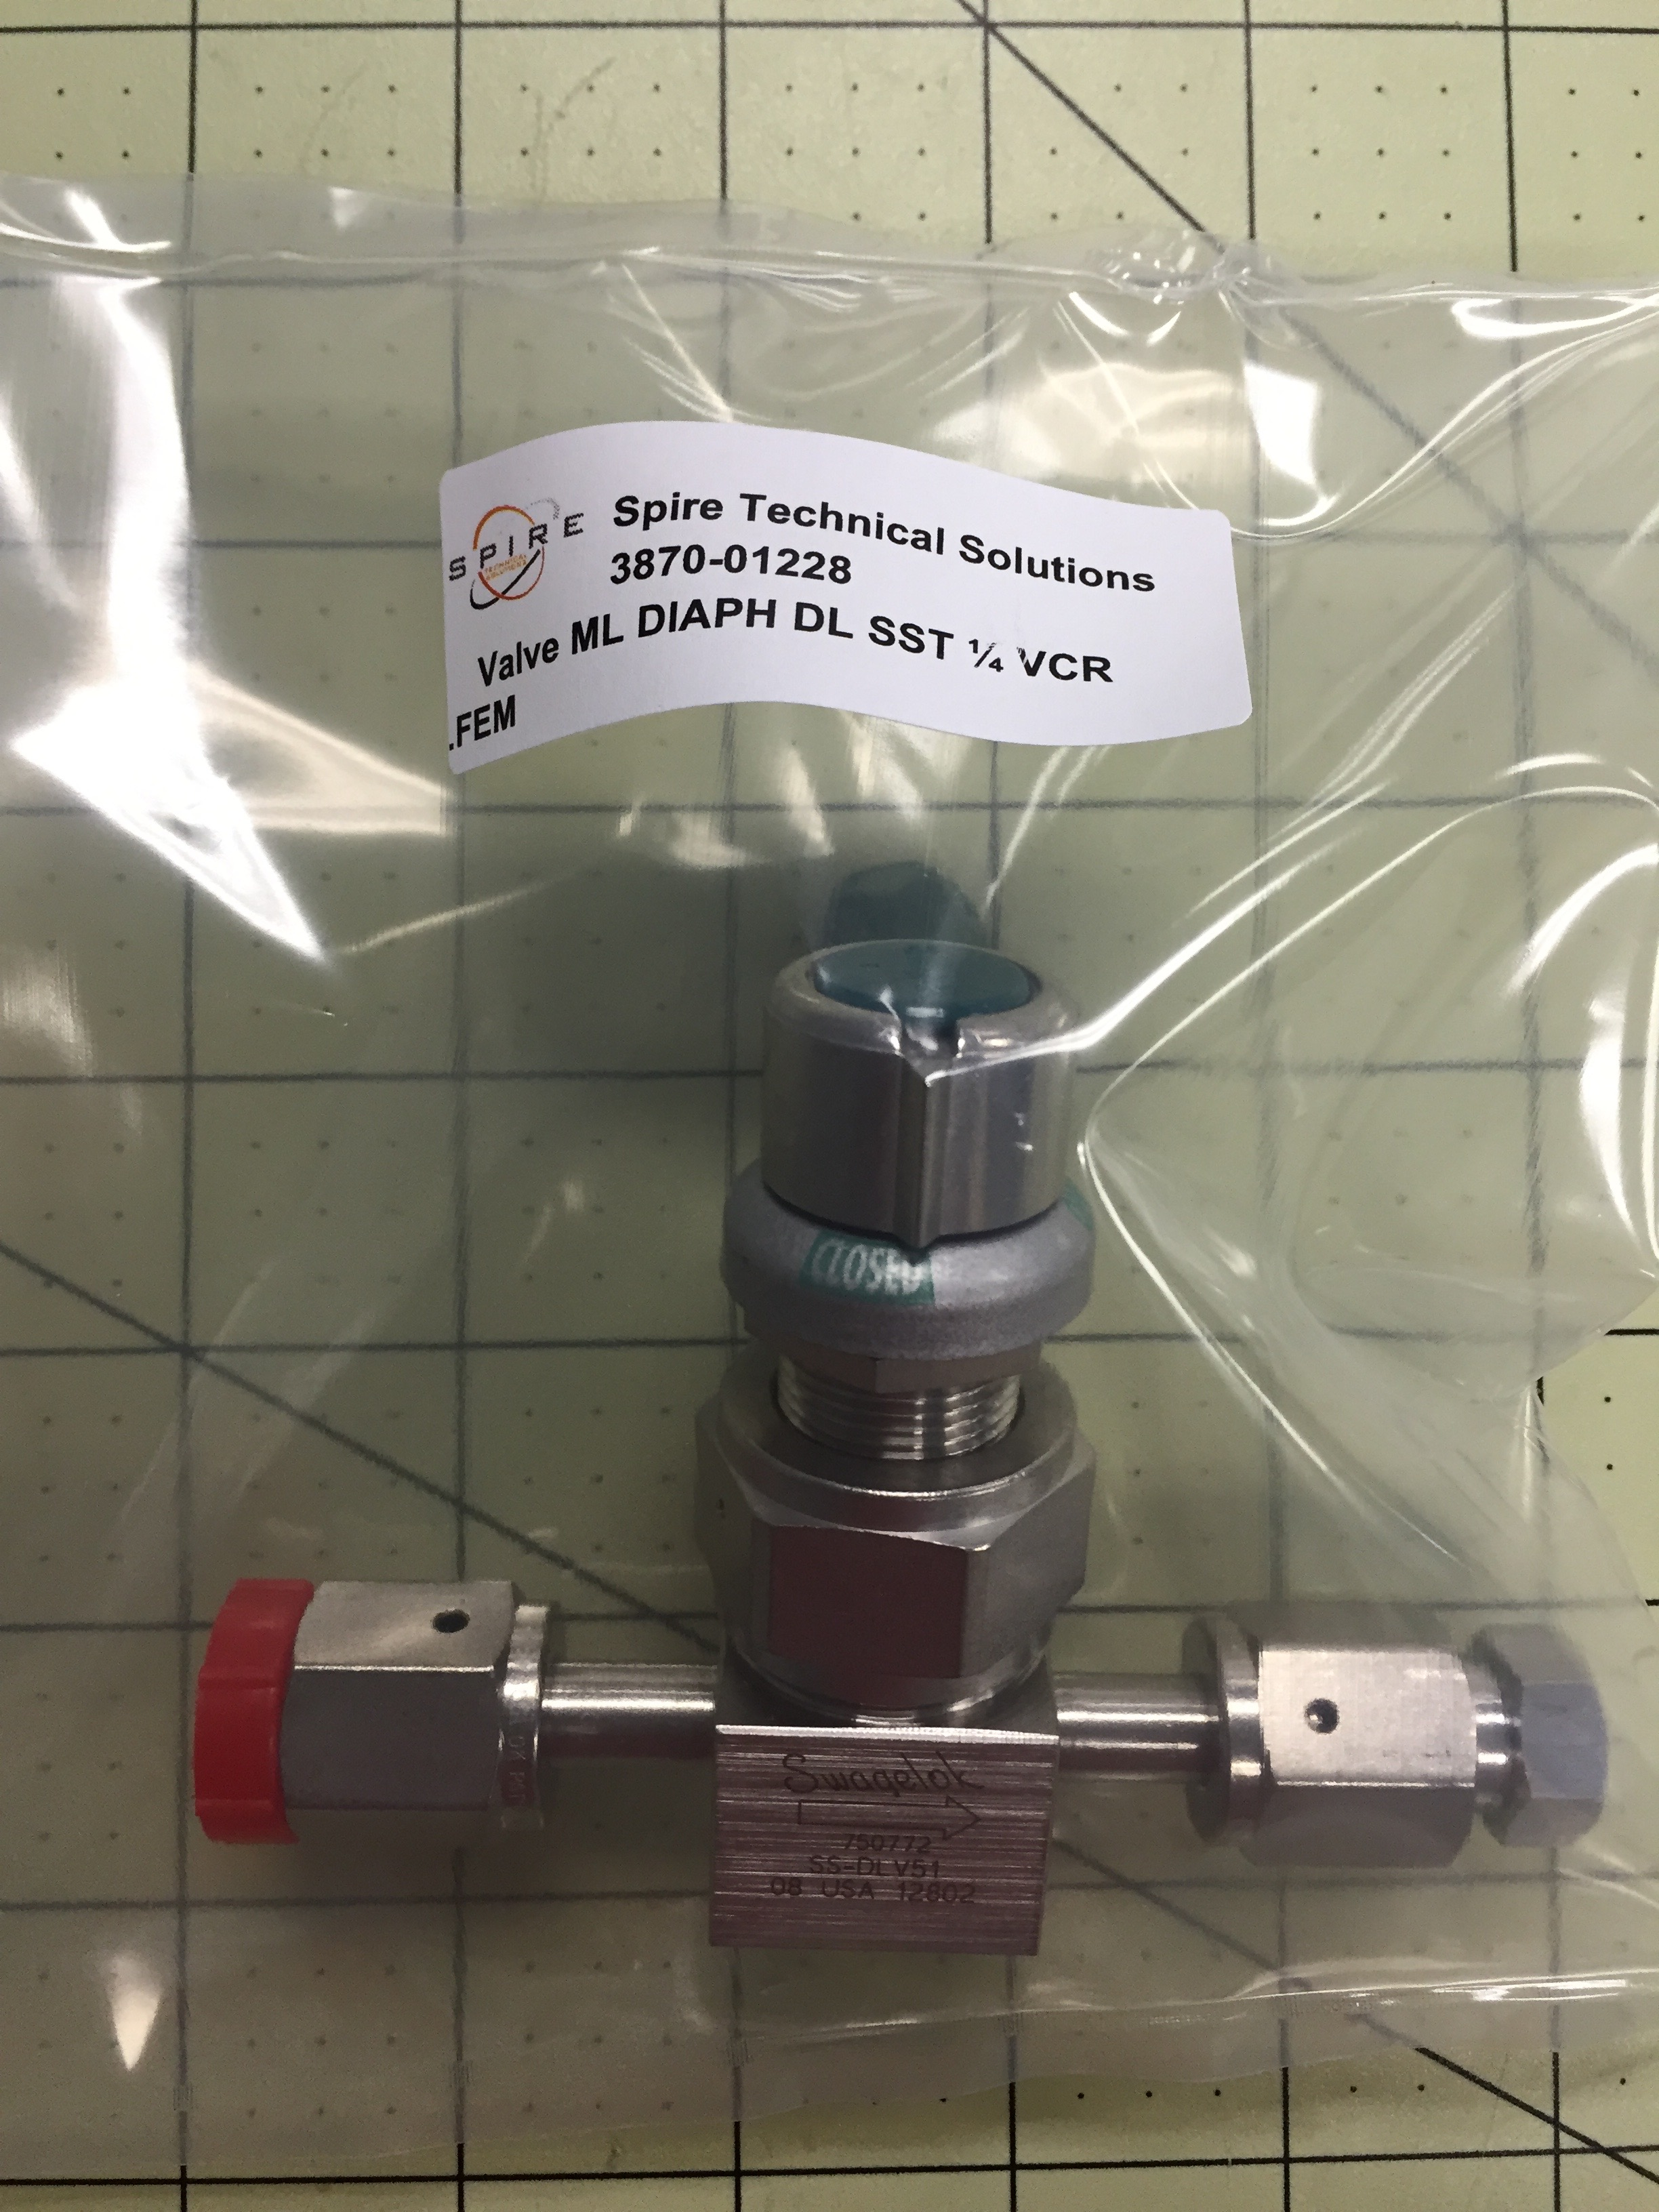 Valve ML DIAPH DL SST ¼ VCR ..